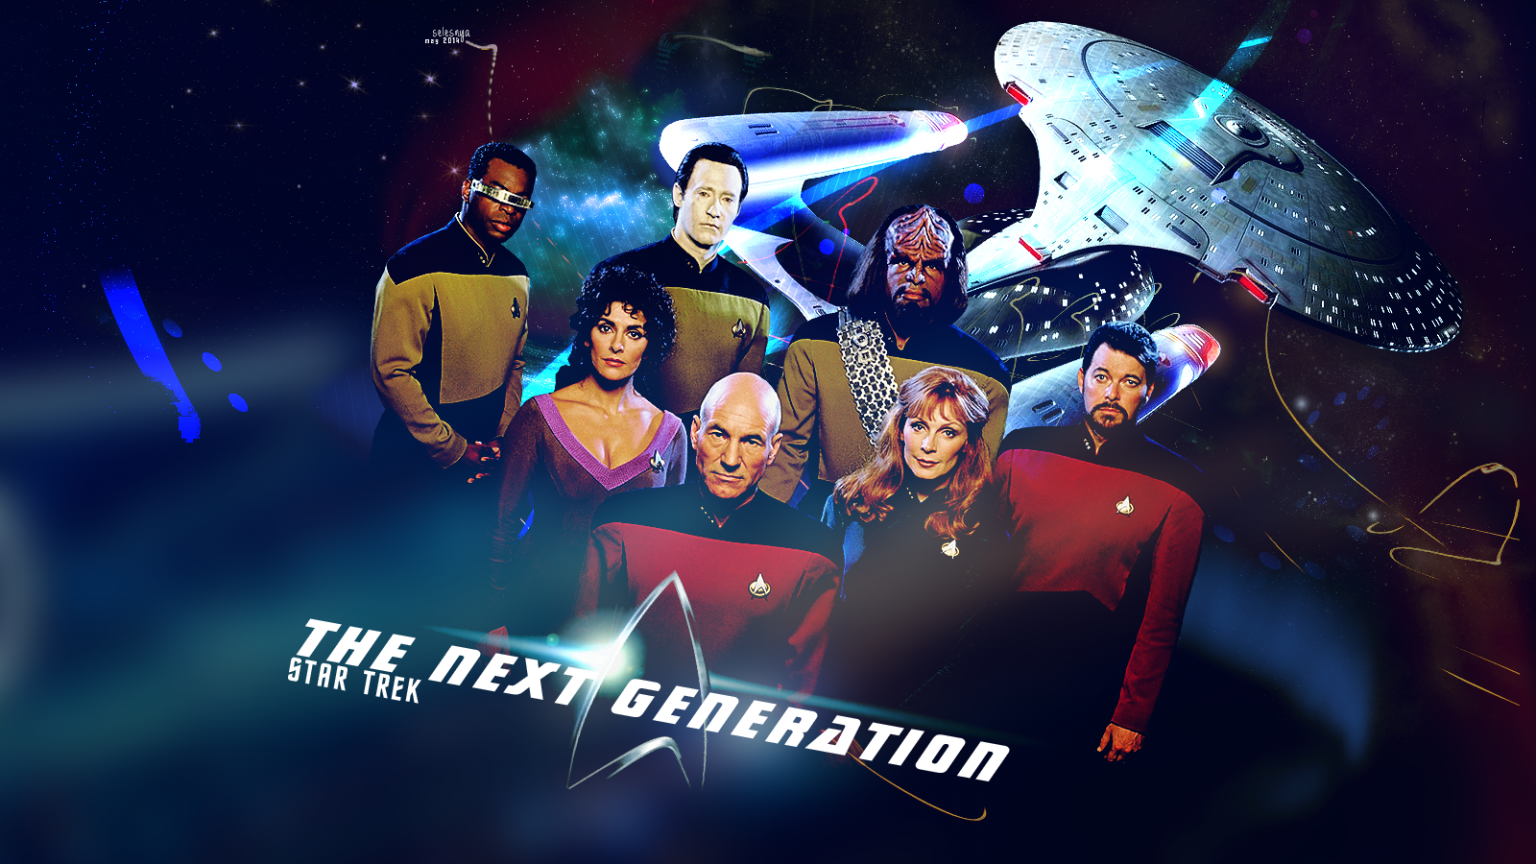 Free Download Star Trek The Next Generation Wallpapers By Selesnya